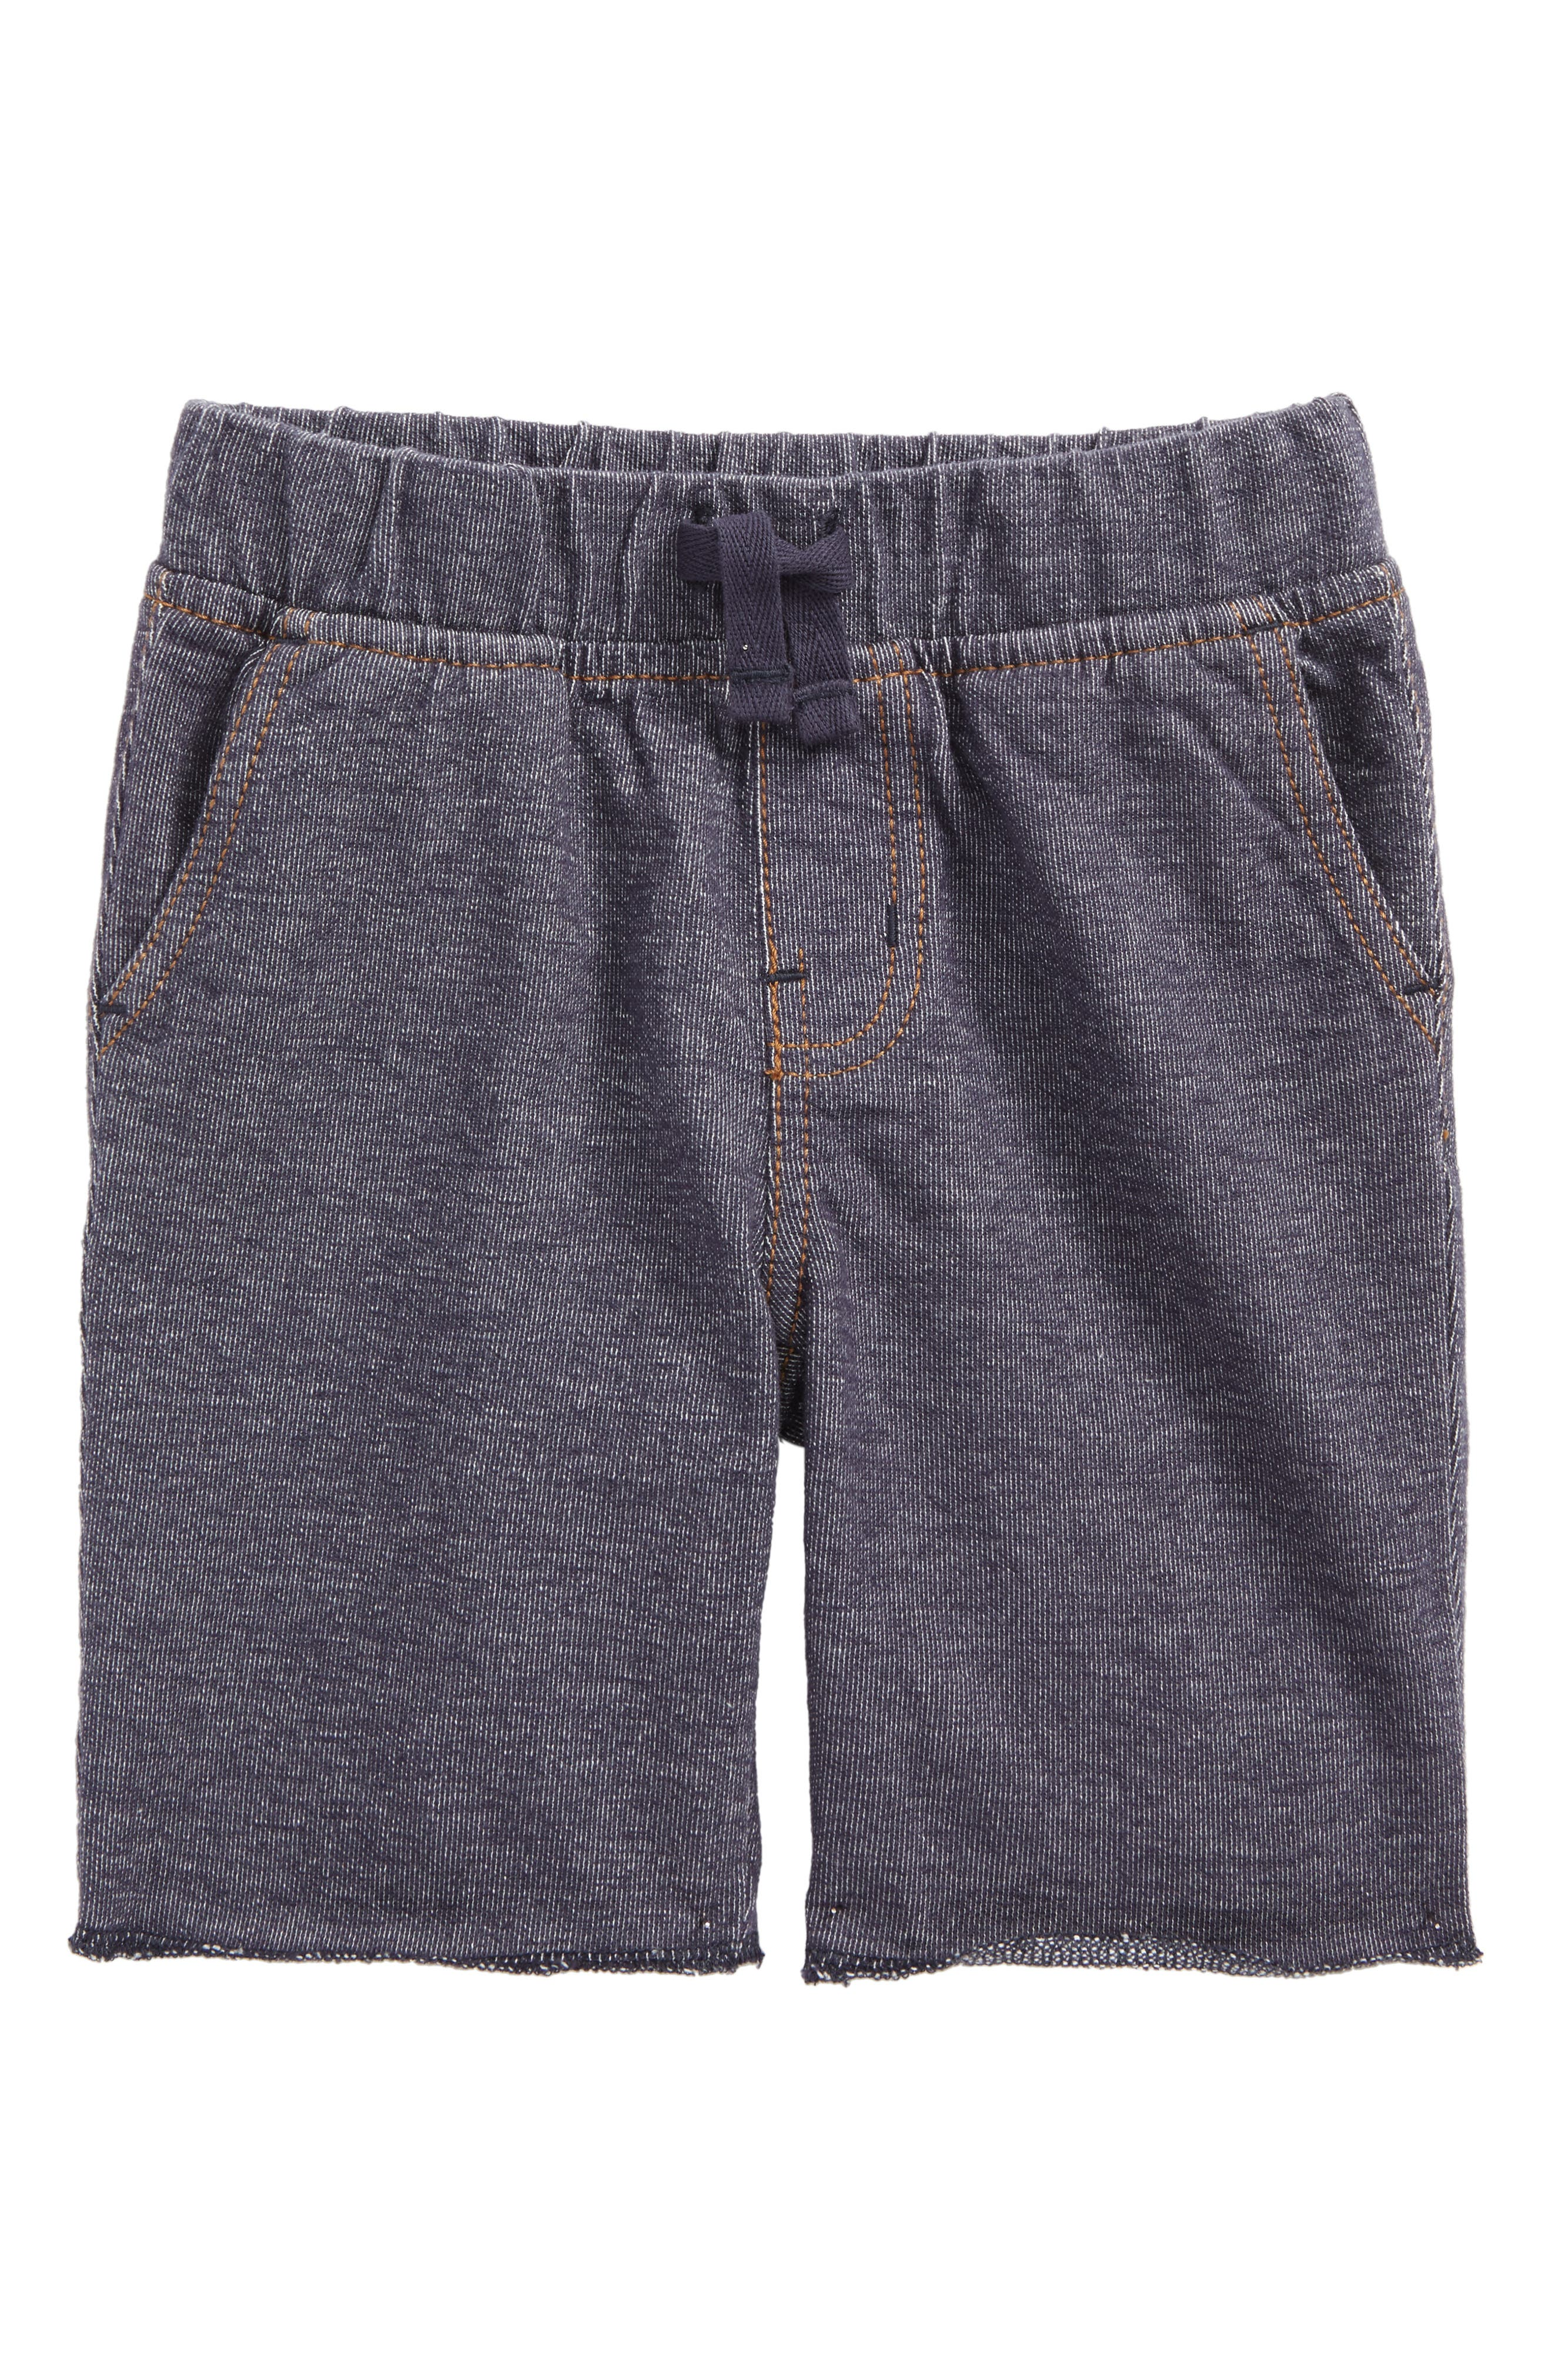 Alternate Image 1 Selected - Tea Collection Shorts (Baby Boys)